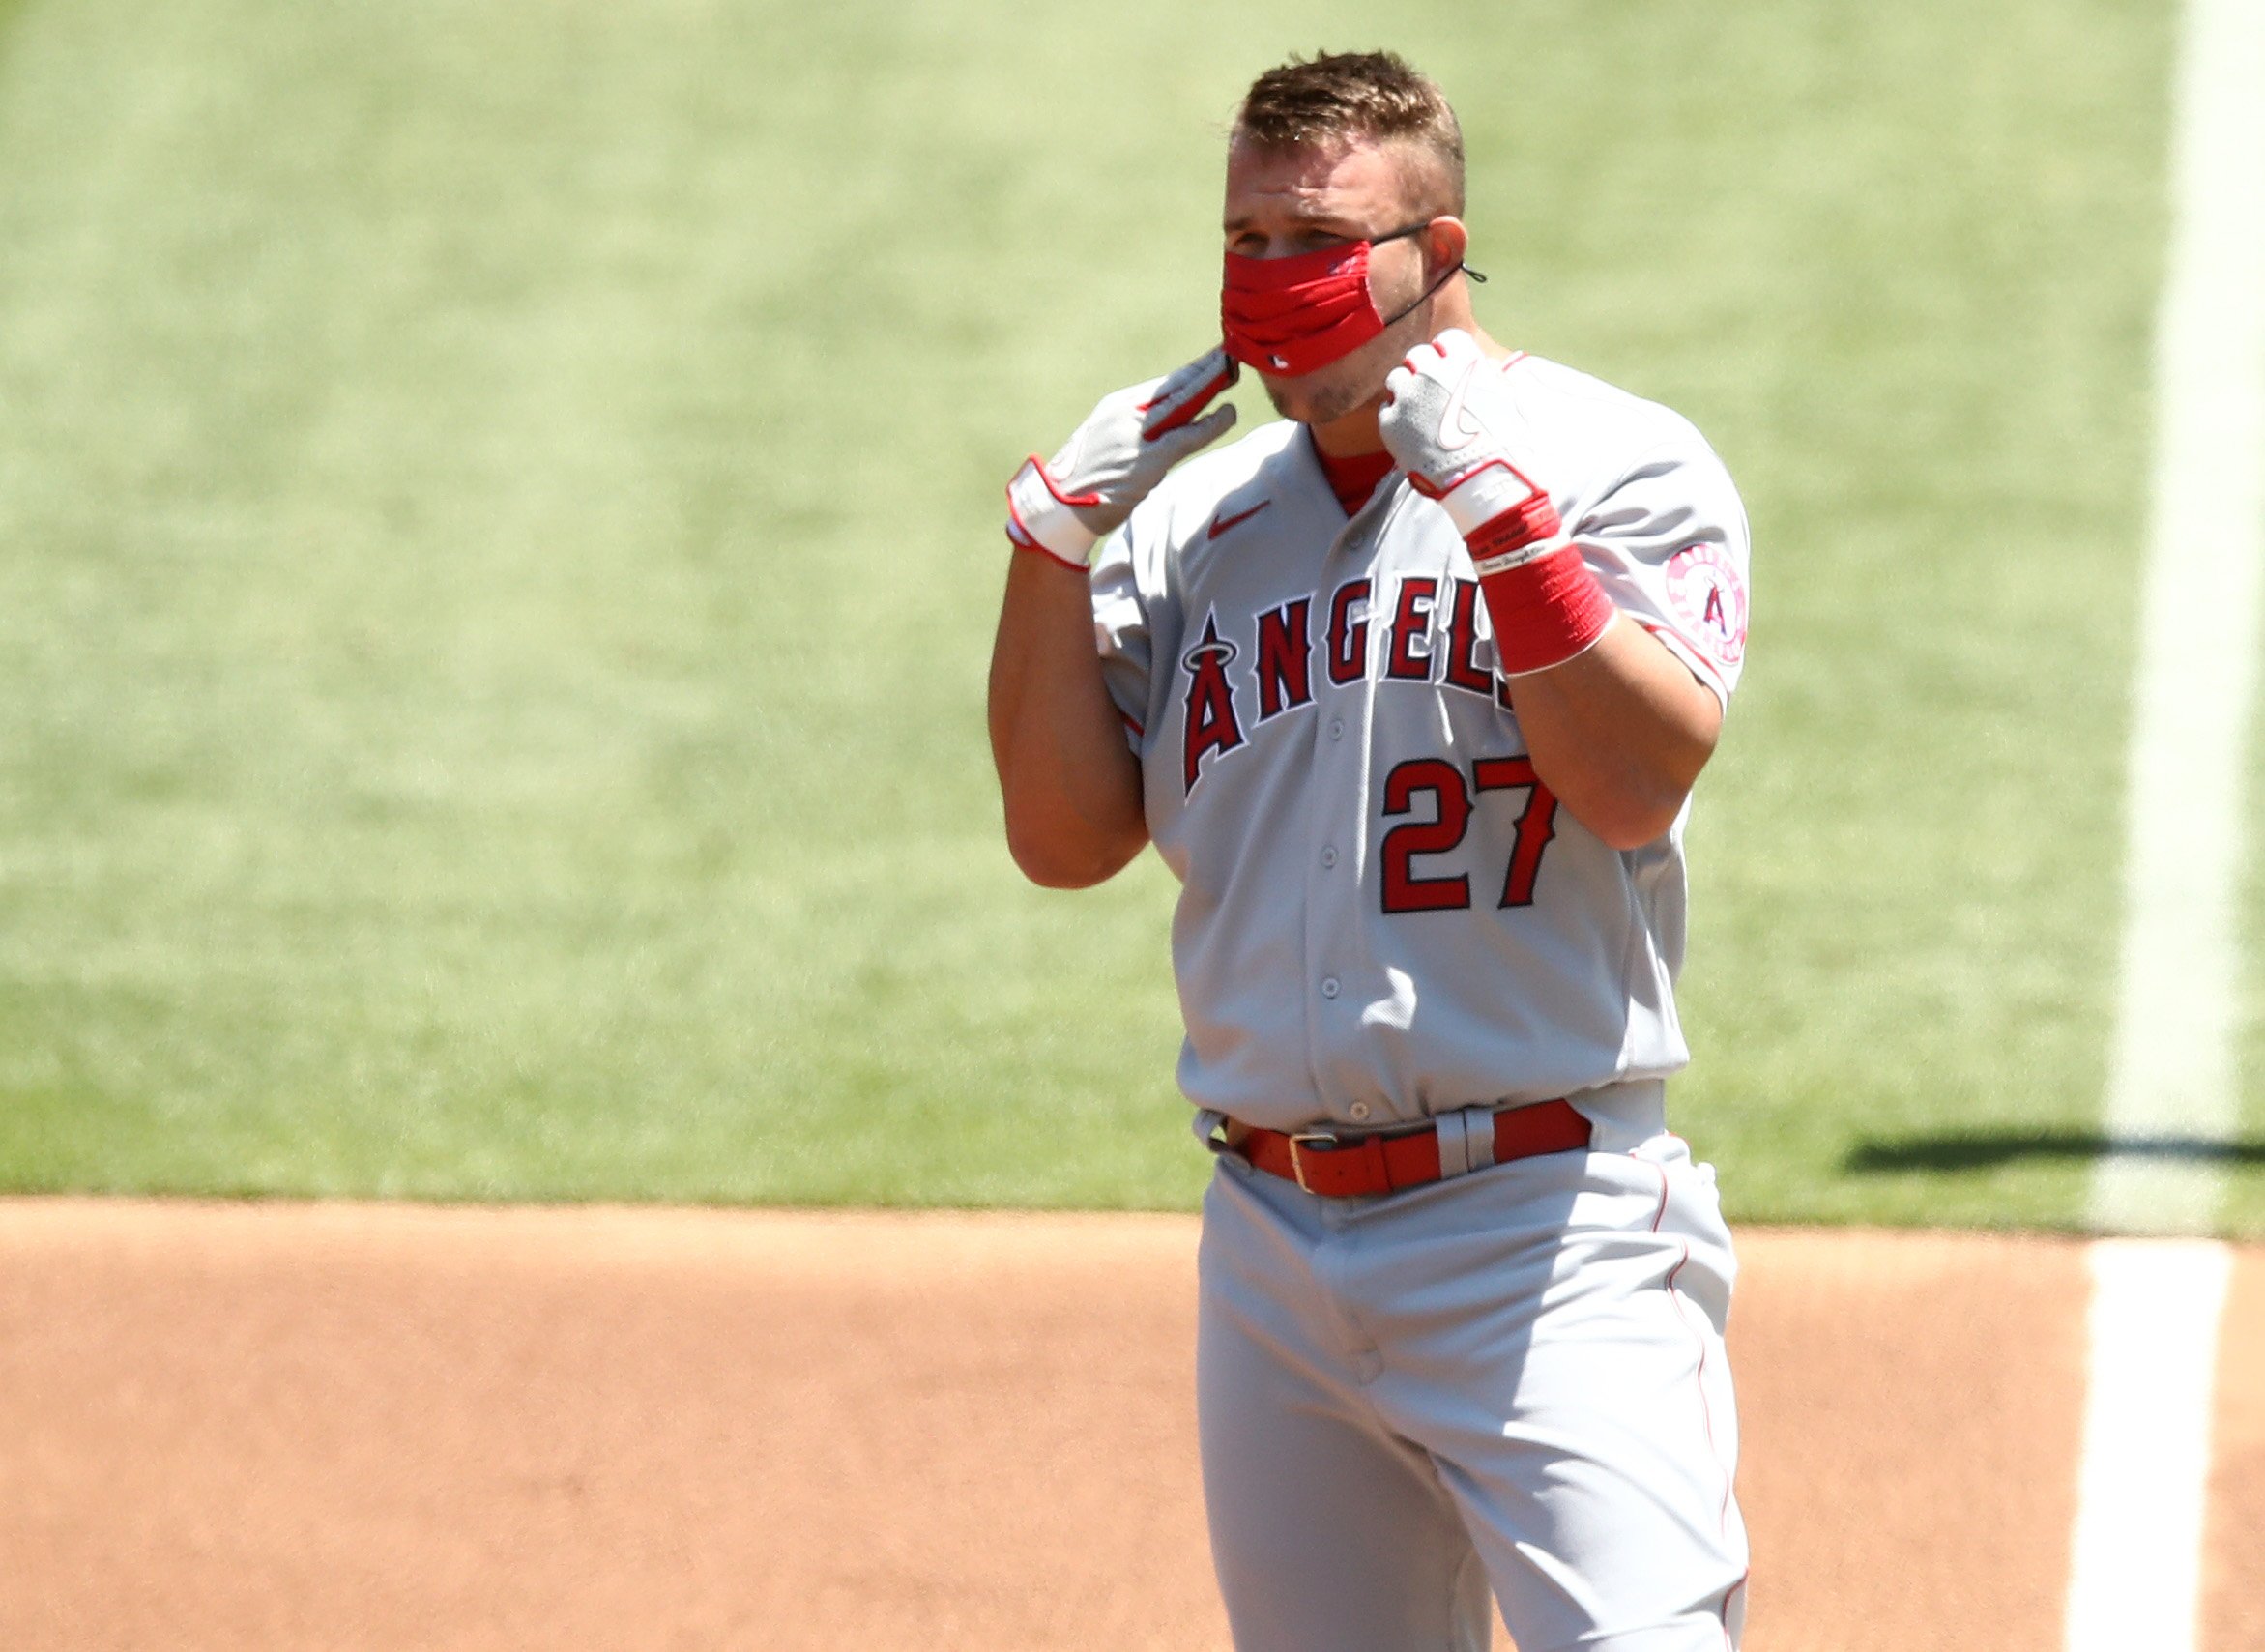 Los Angeles Angels star outfielder Mike Trout debuted in the majors at age 19. Was Trout the youngest player in MLB history.